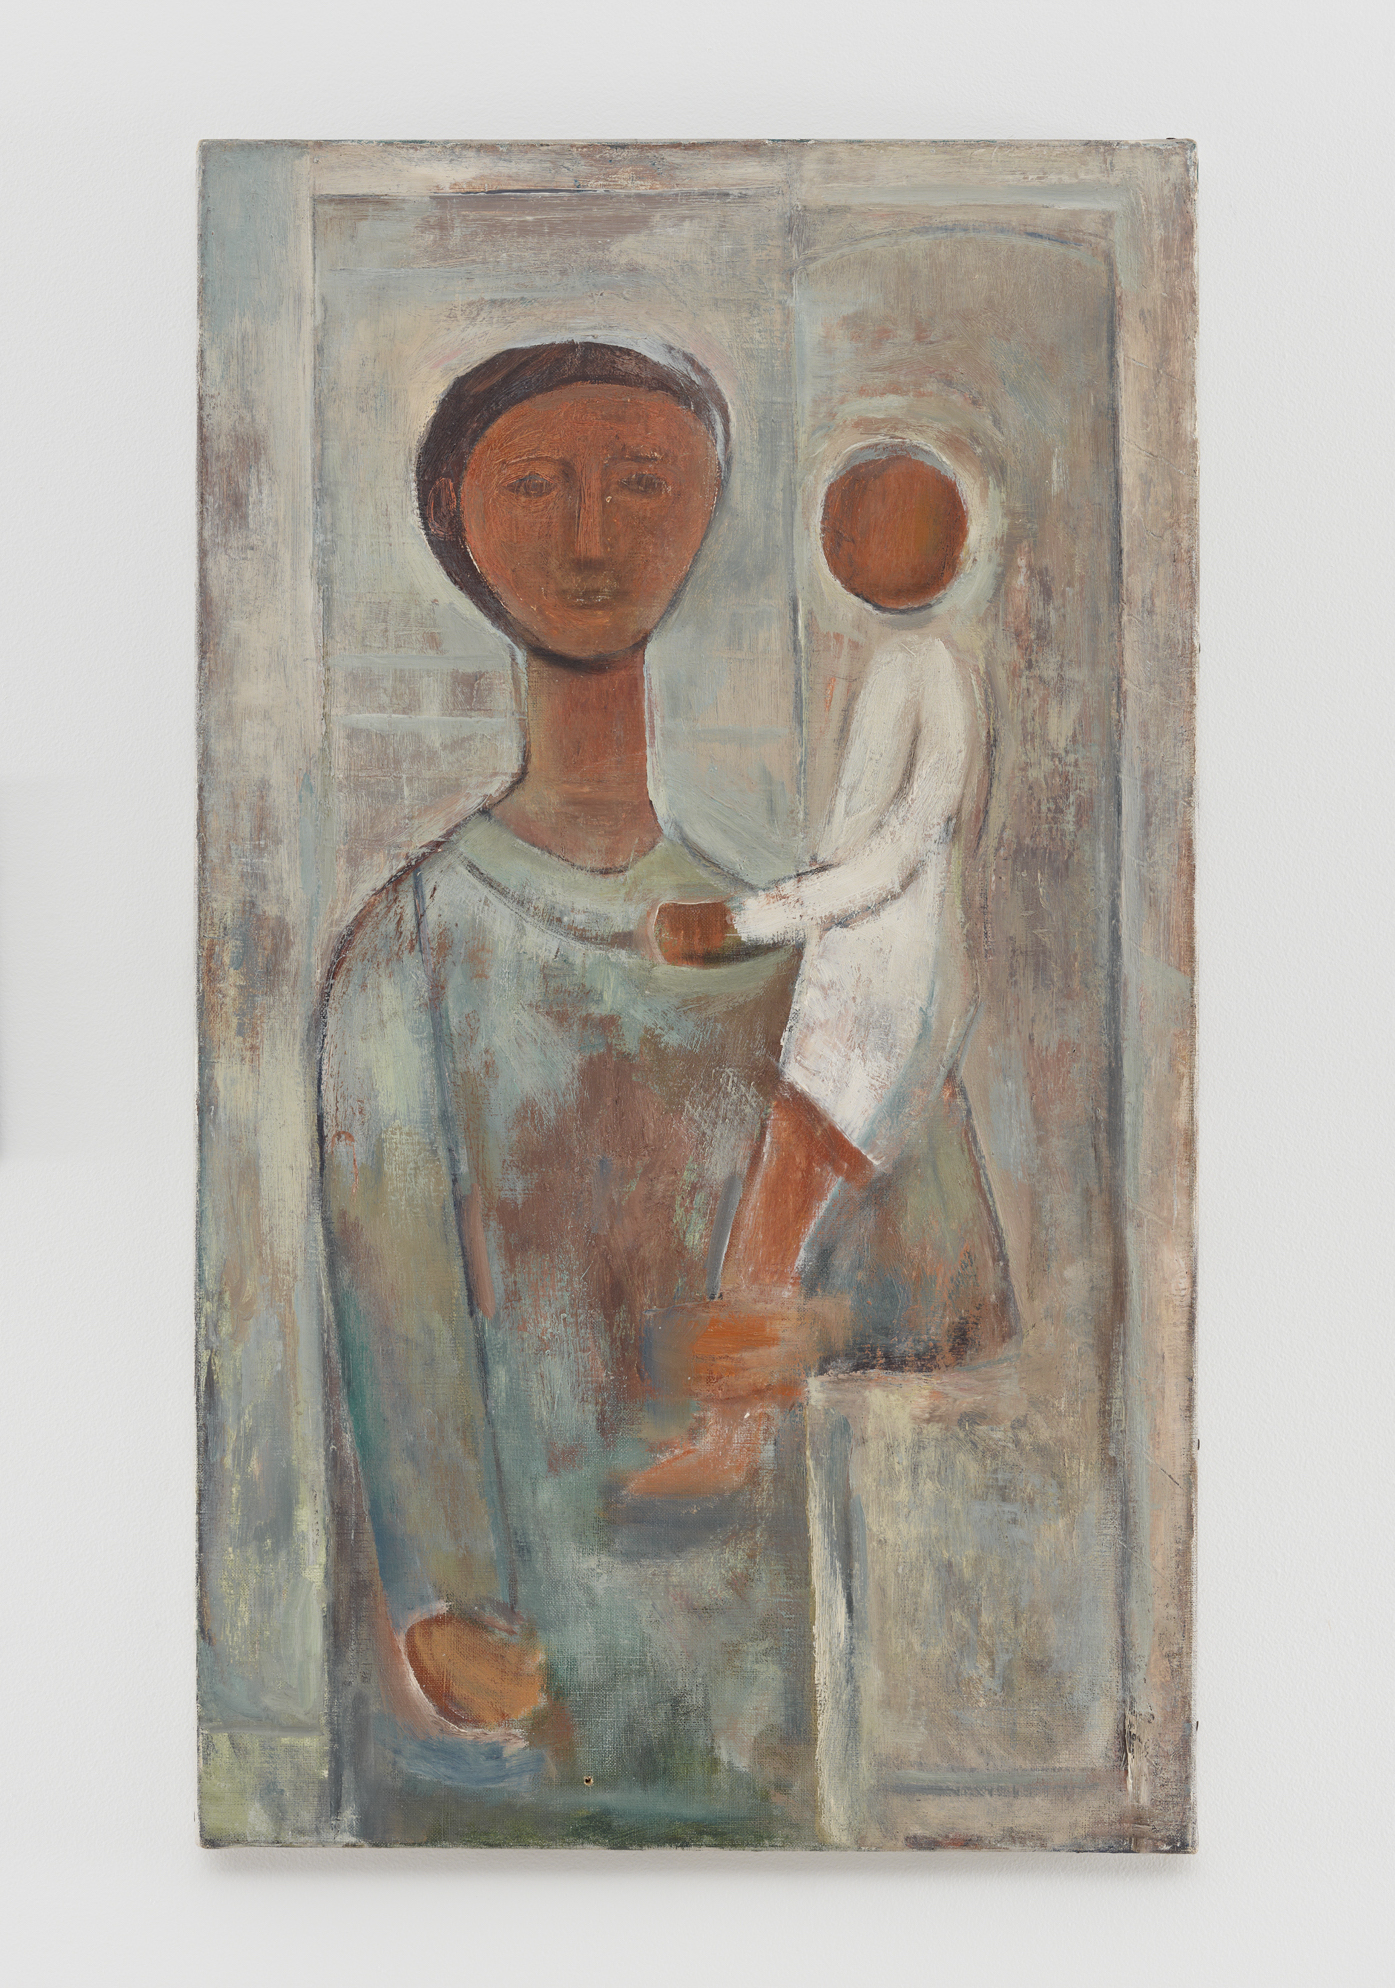 Mother and Child, 1949, oil on linen, 29 x 17 inches (73.7 x 43.2 cm). Blanton Museum of Art, The University of Texas at Austin. Ellsworth Kelly Foundation. Photo Ron Amstutz, courtesy Ellsworth Kelly Studio